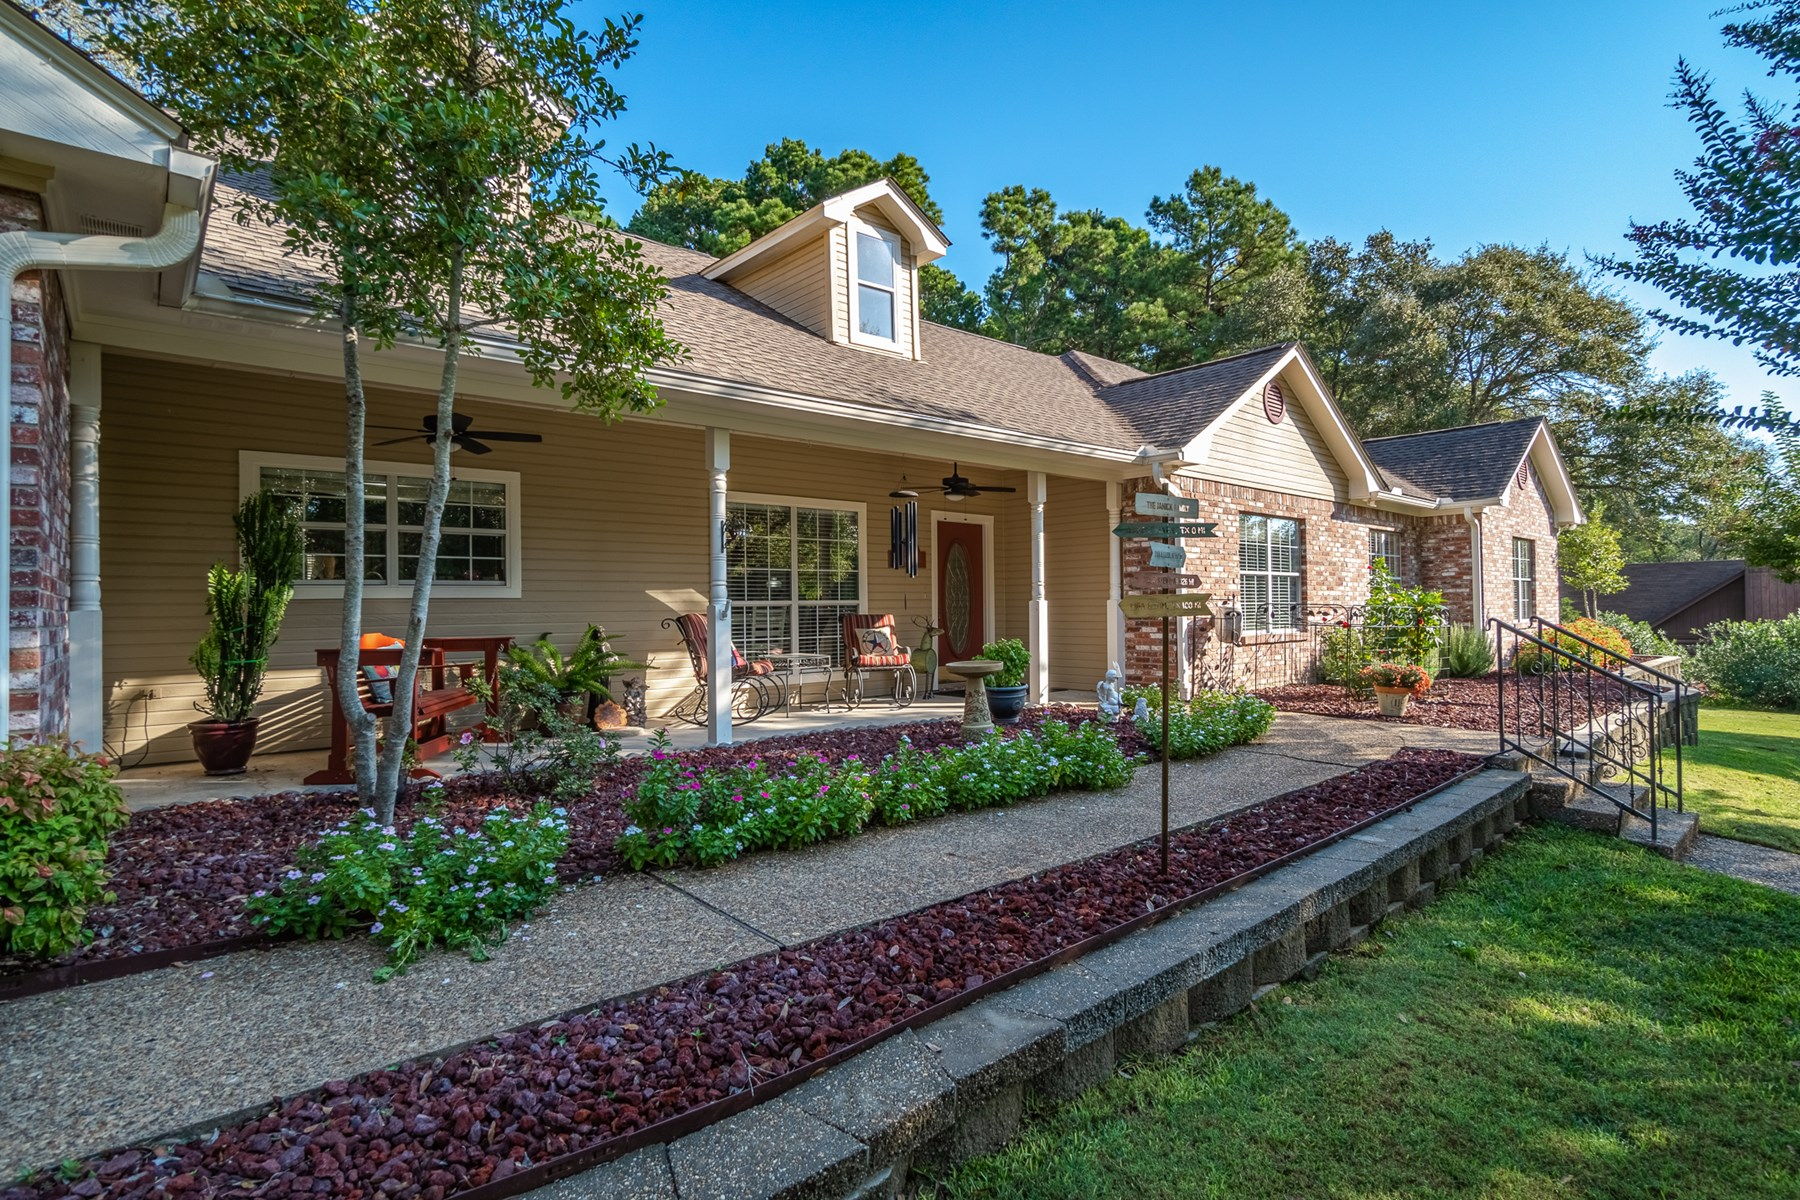 HOLLY LAKE RANCH, TEXAS MOVE-IN READY 4/2/2 HOME